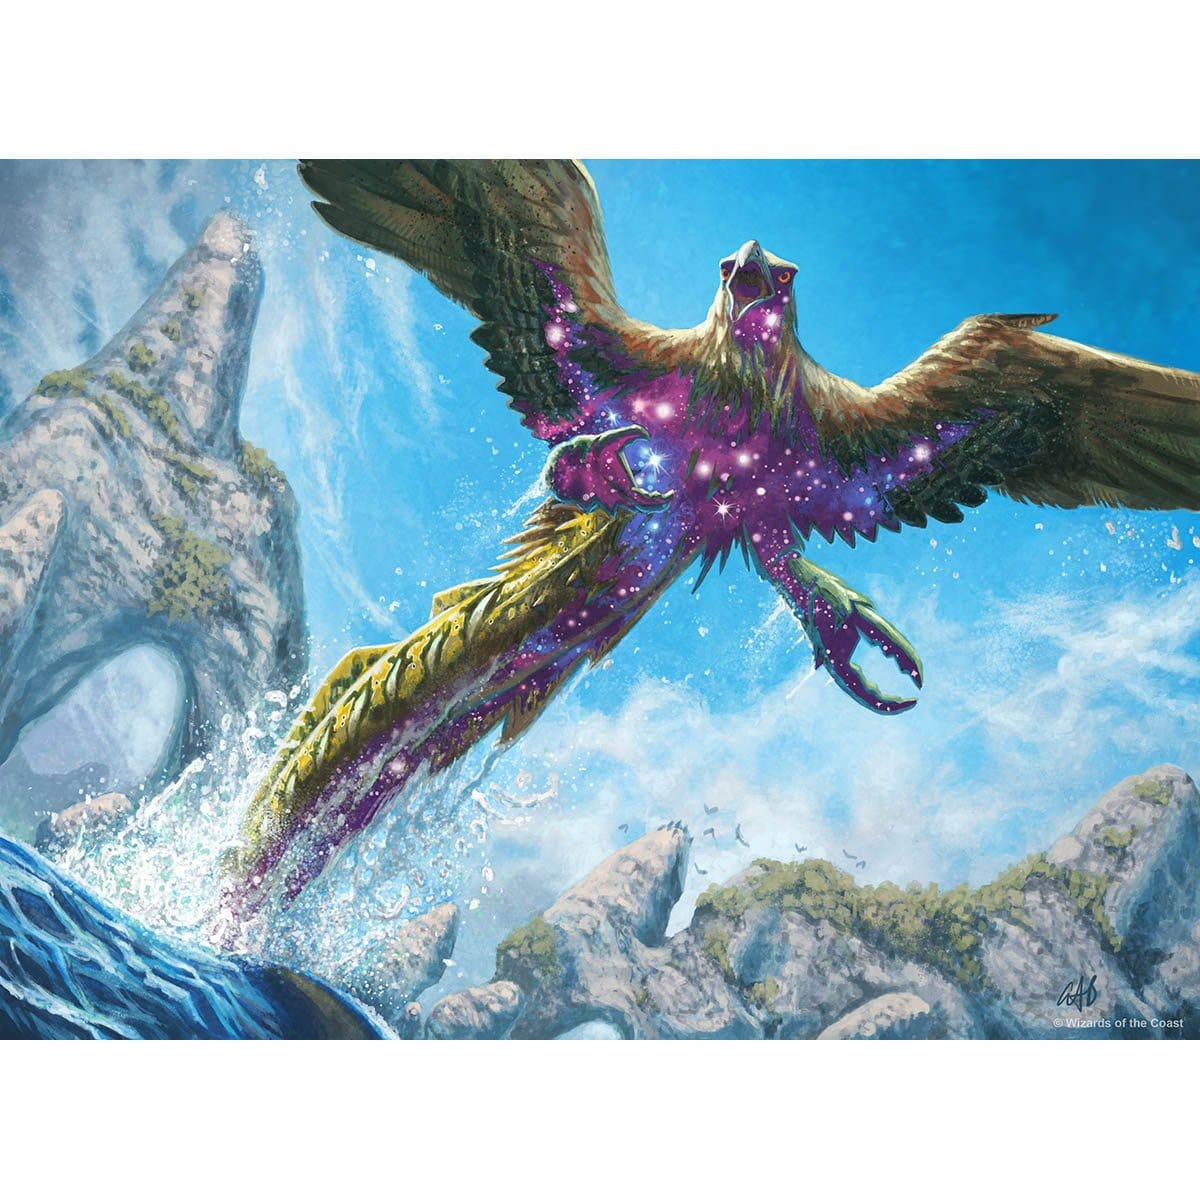 Shimmerwing Chimera Print - Print - Original Magic Art - Accessories for Magic the Gathering and other card games